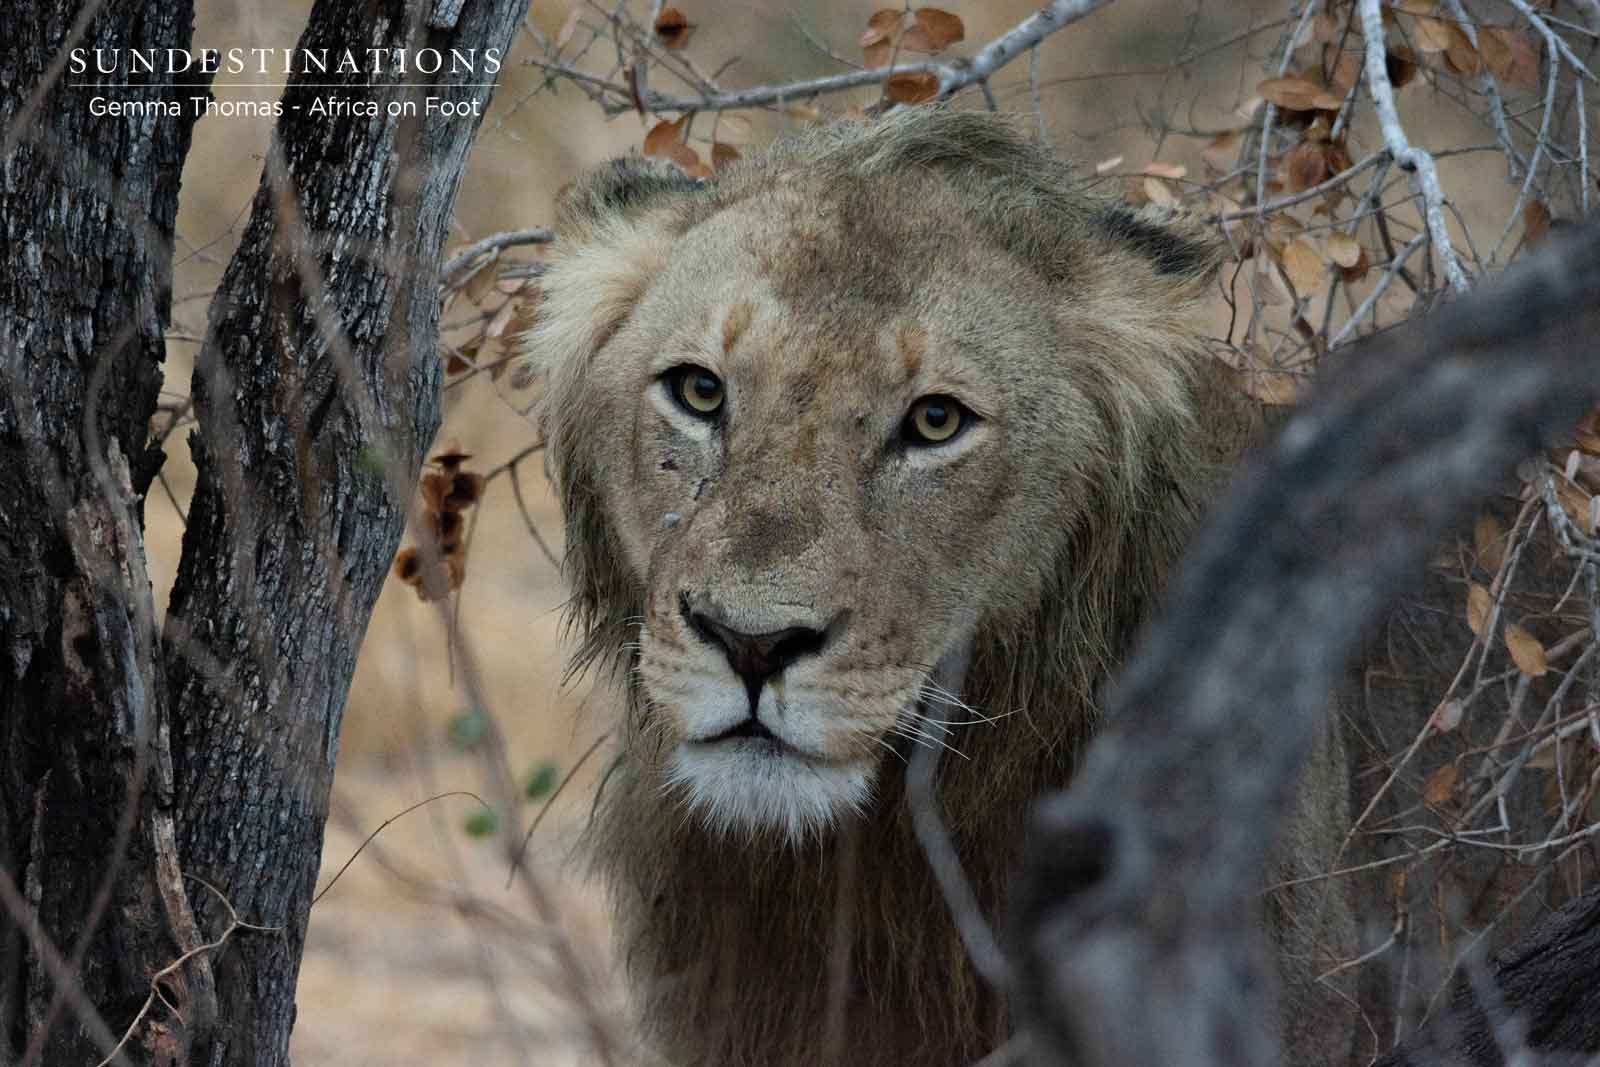 Male Lion at Africa on Foot